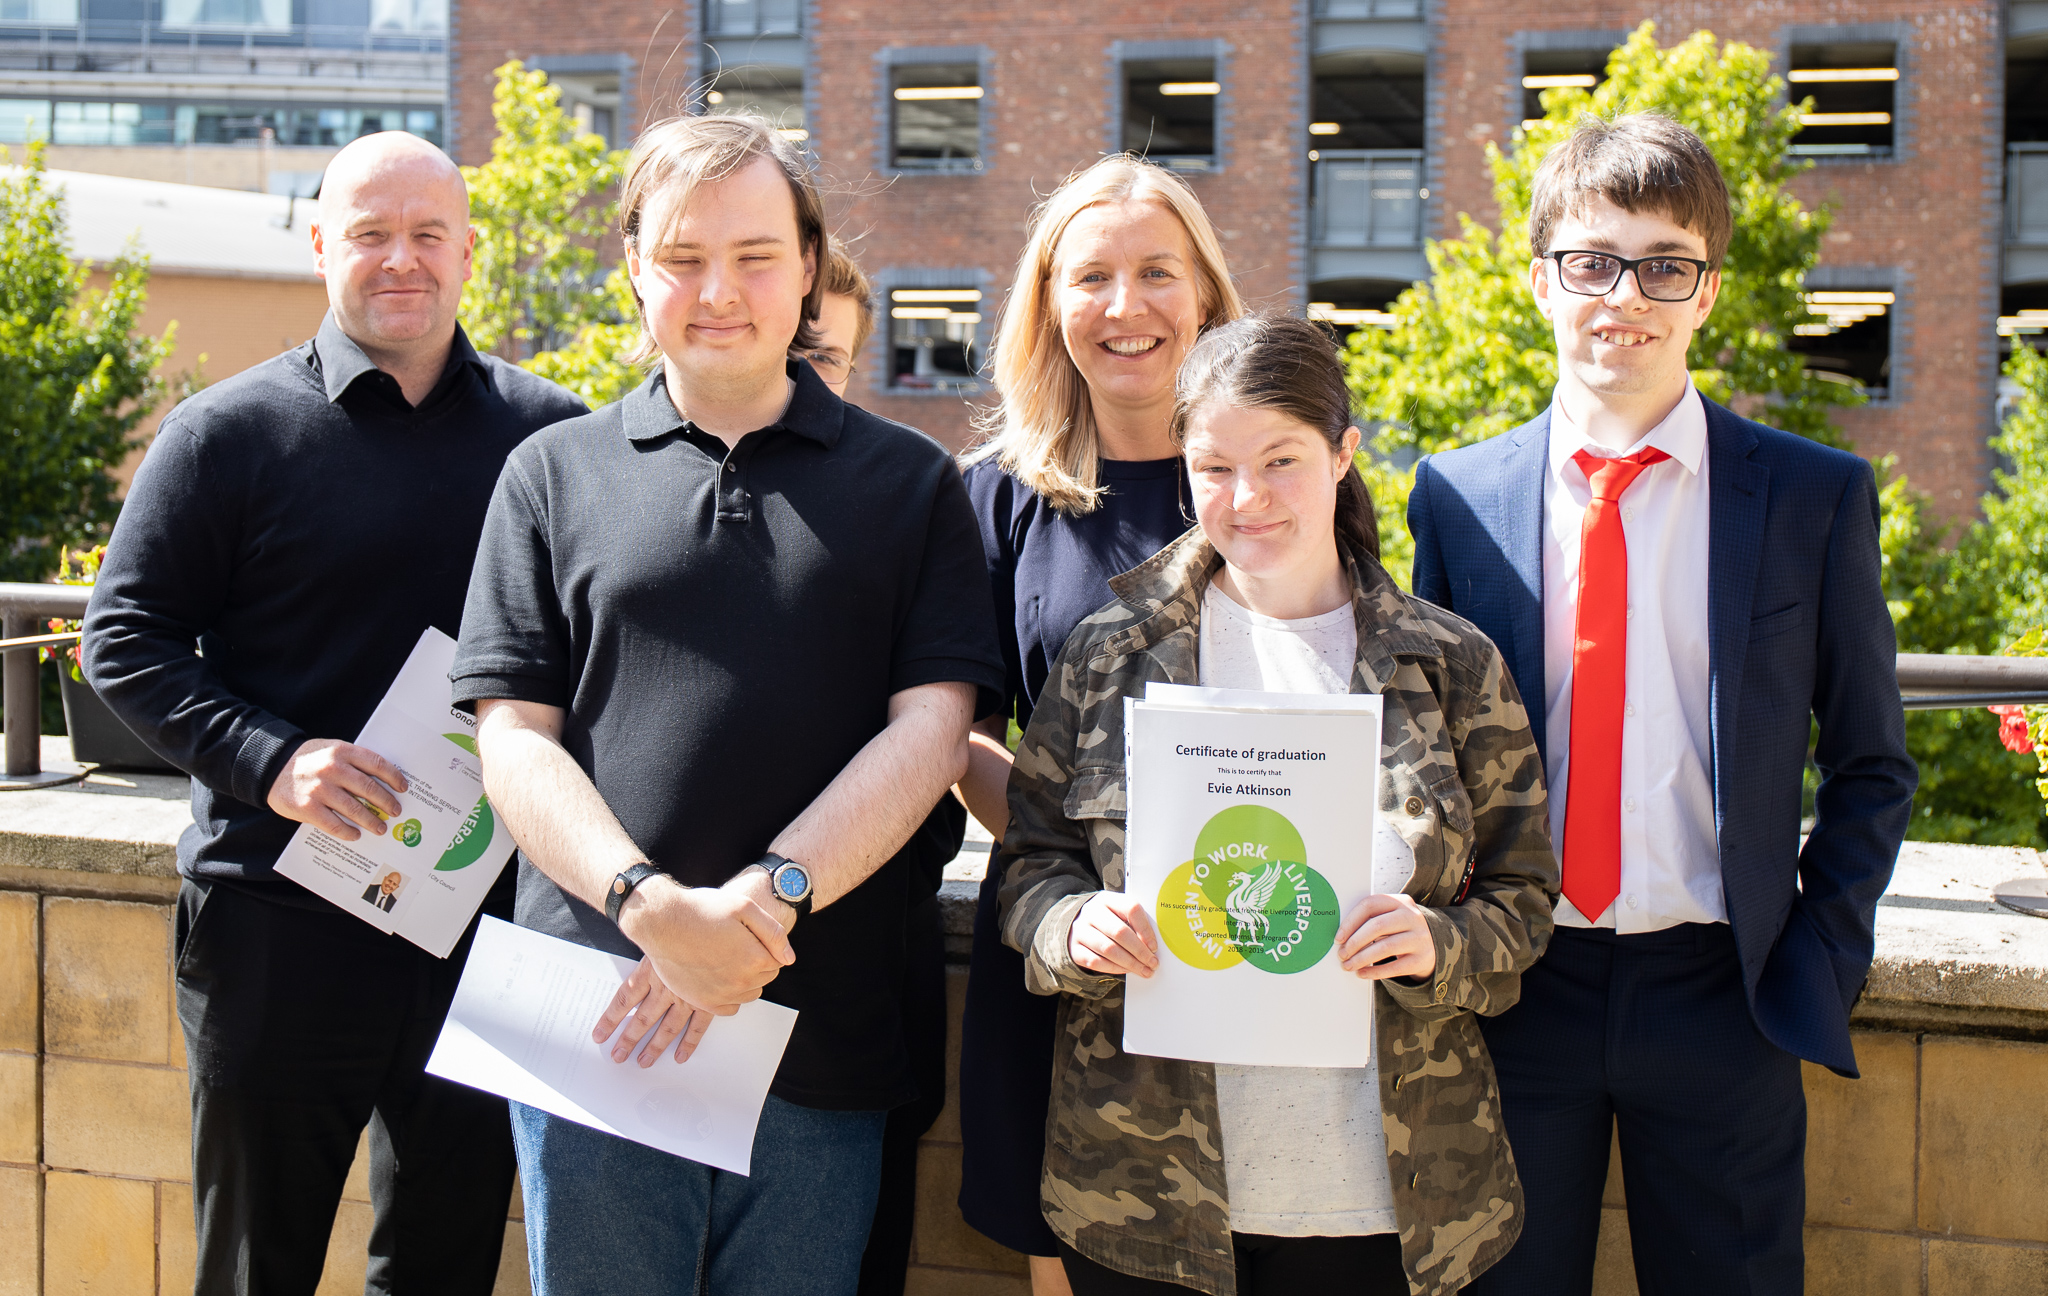 Michael, Mark, Evie and Andrew, supported interns from Bankview high School with their head teacher, Juliette Gelling and their head of sixth form Gareth Davey.